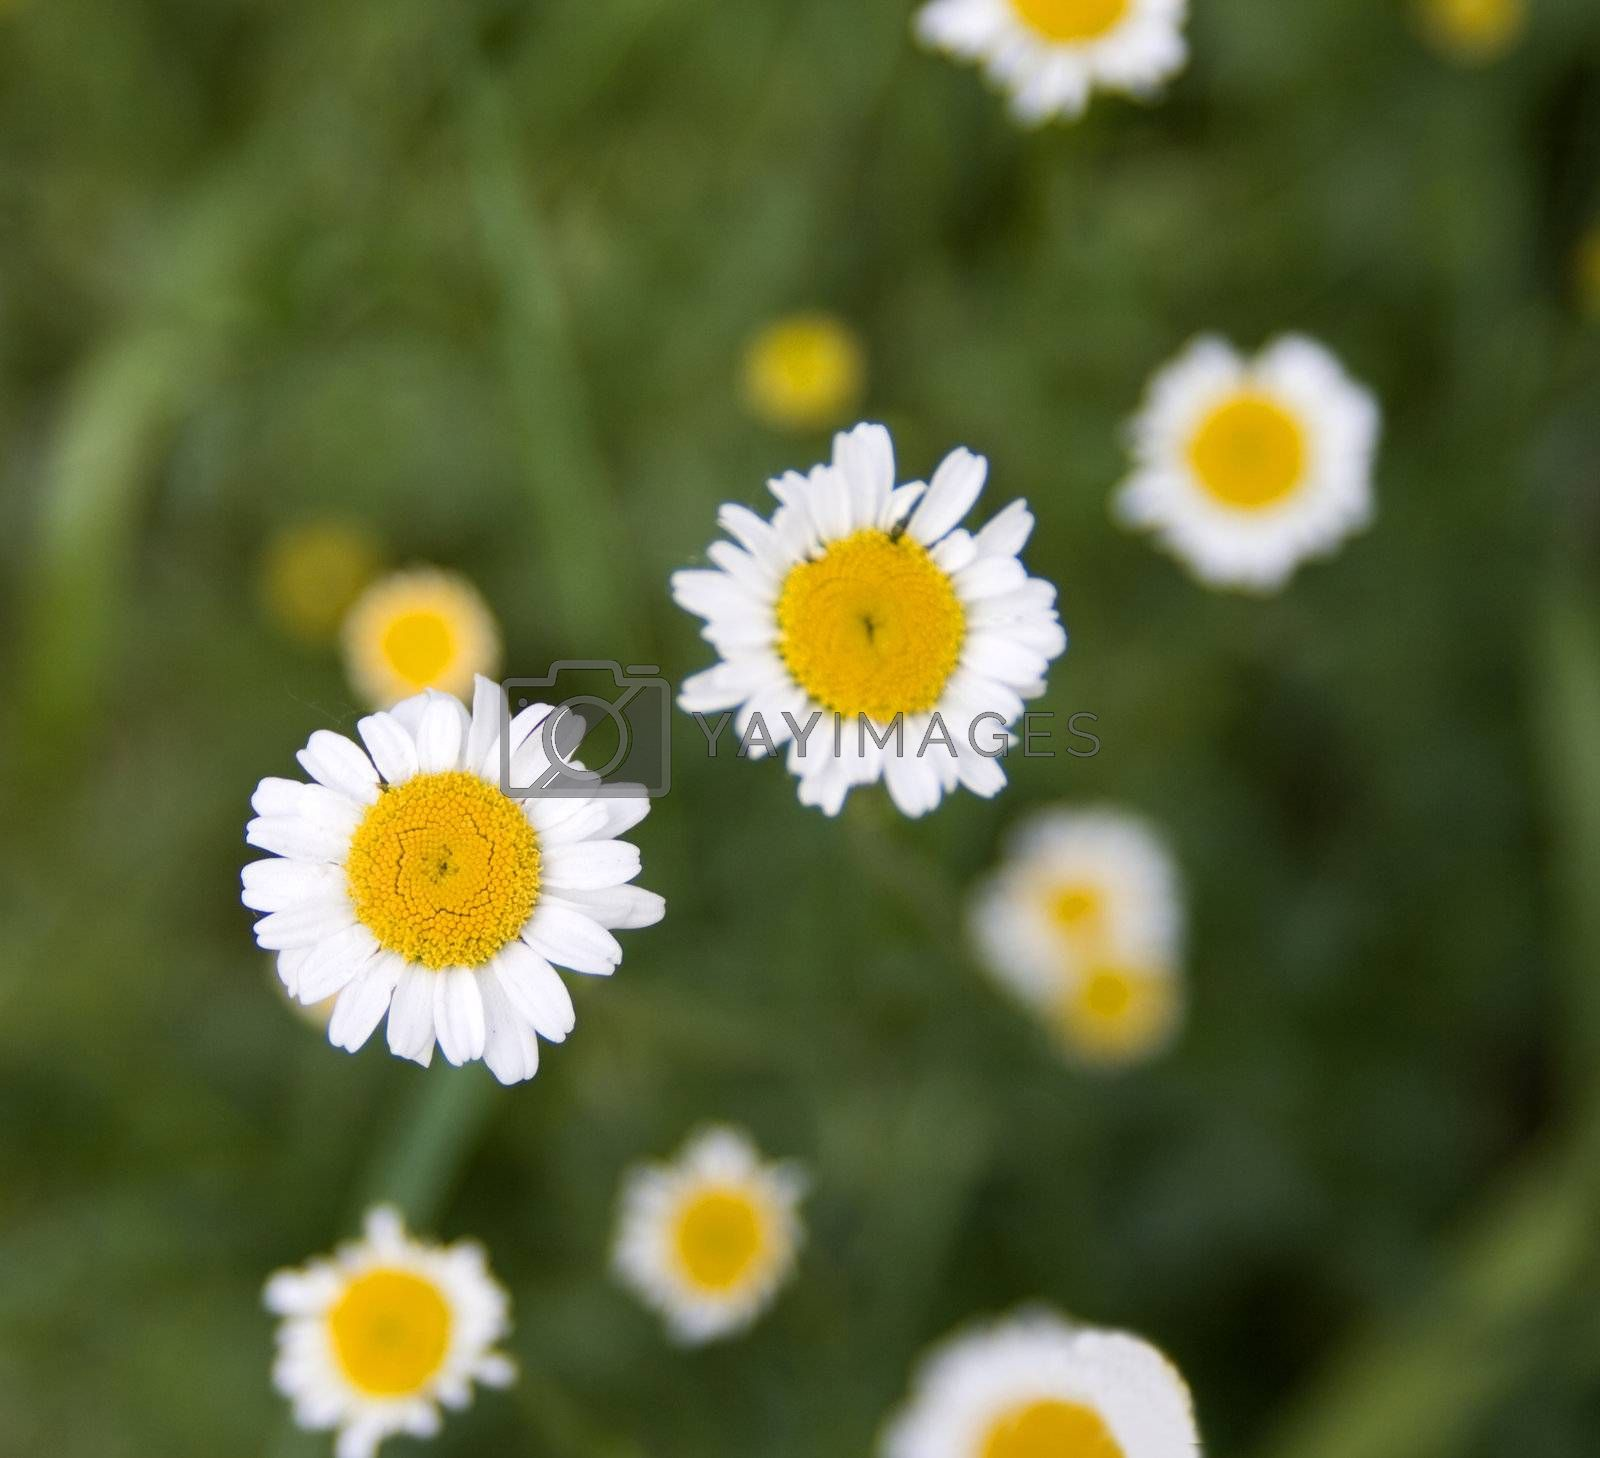 Royalty free image of Daisies by Koufax73